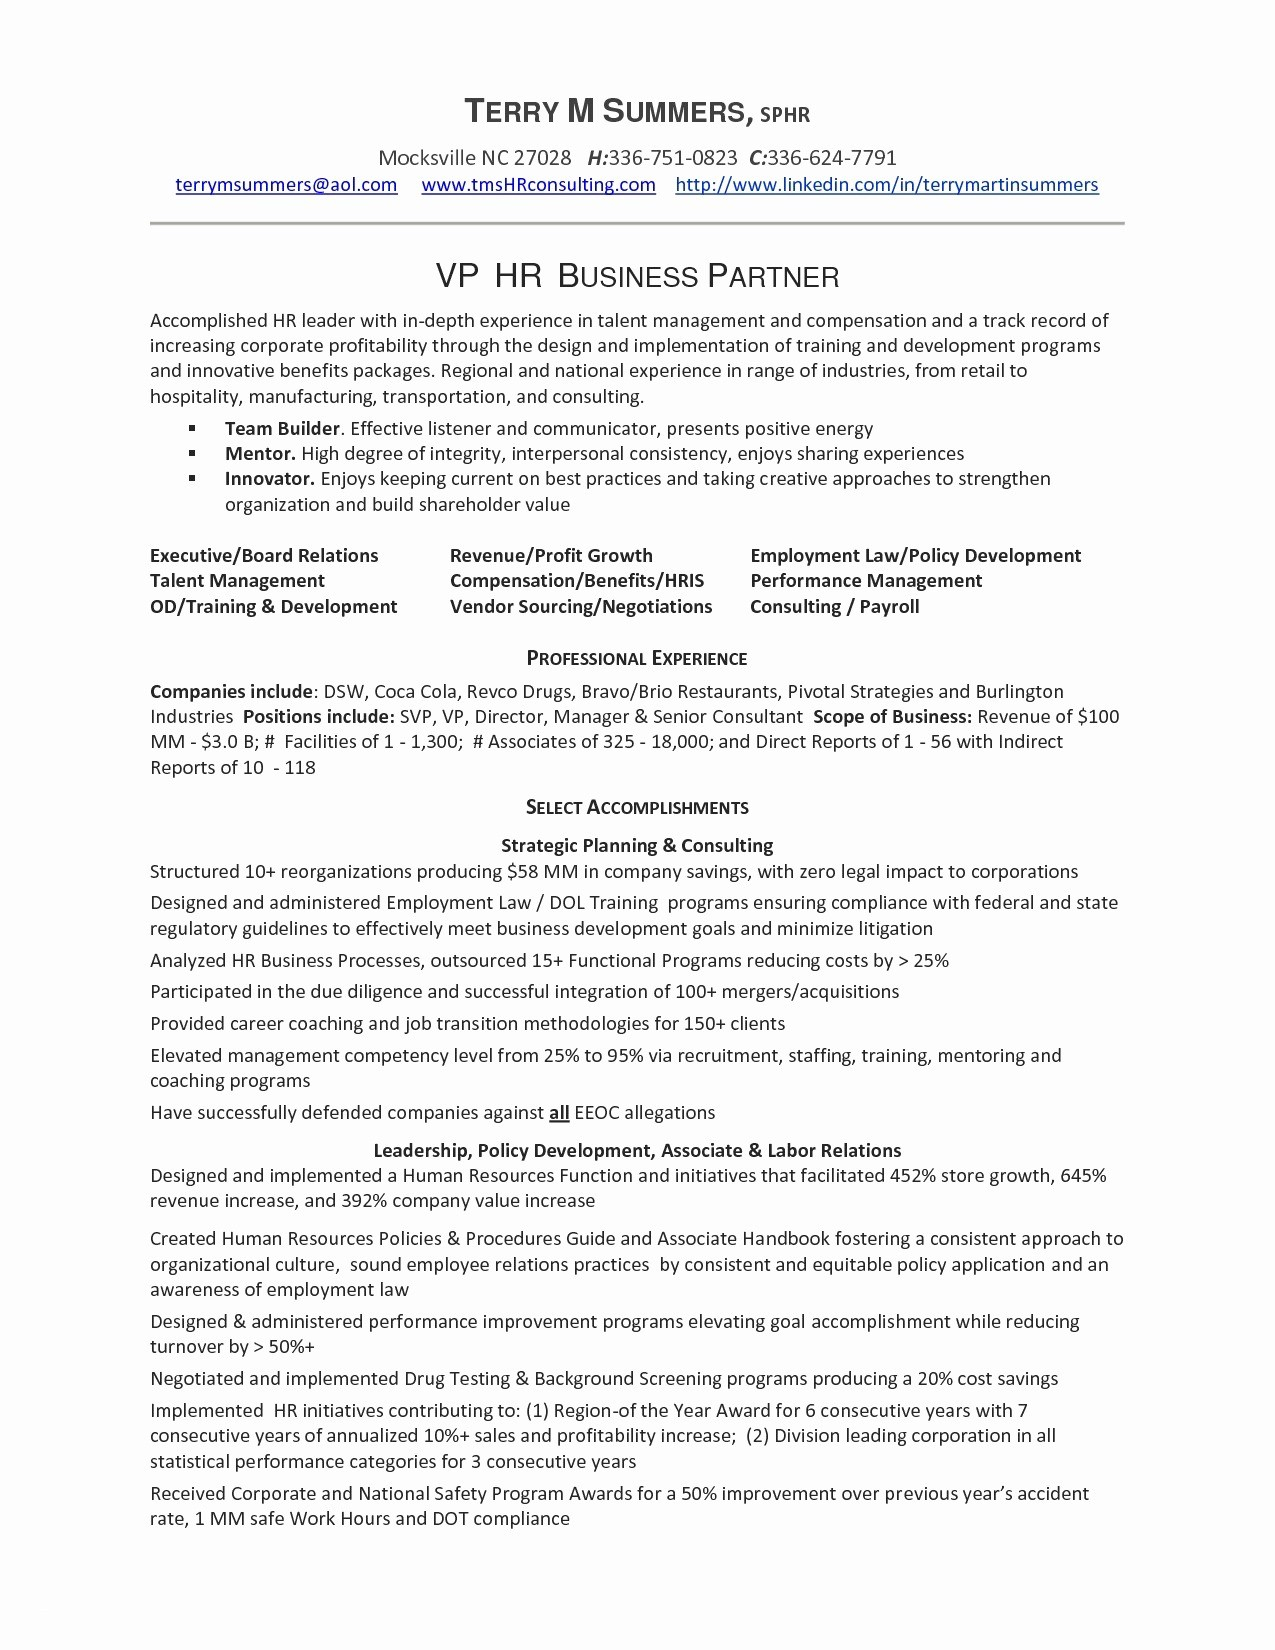 Healthcare Ba Resume - Healthcare Business Retail and Education are Examples Of Industries